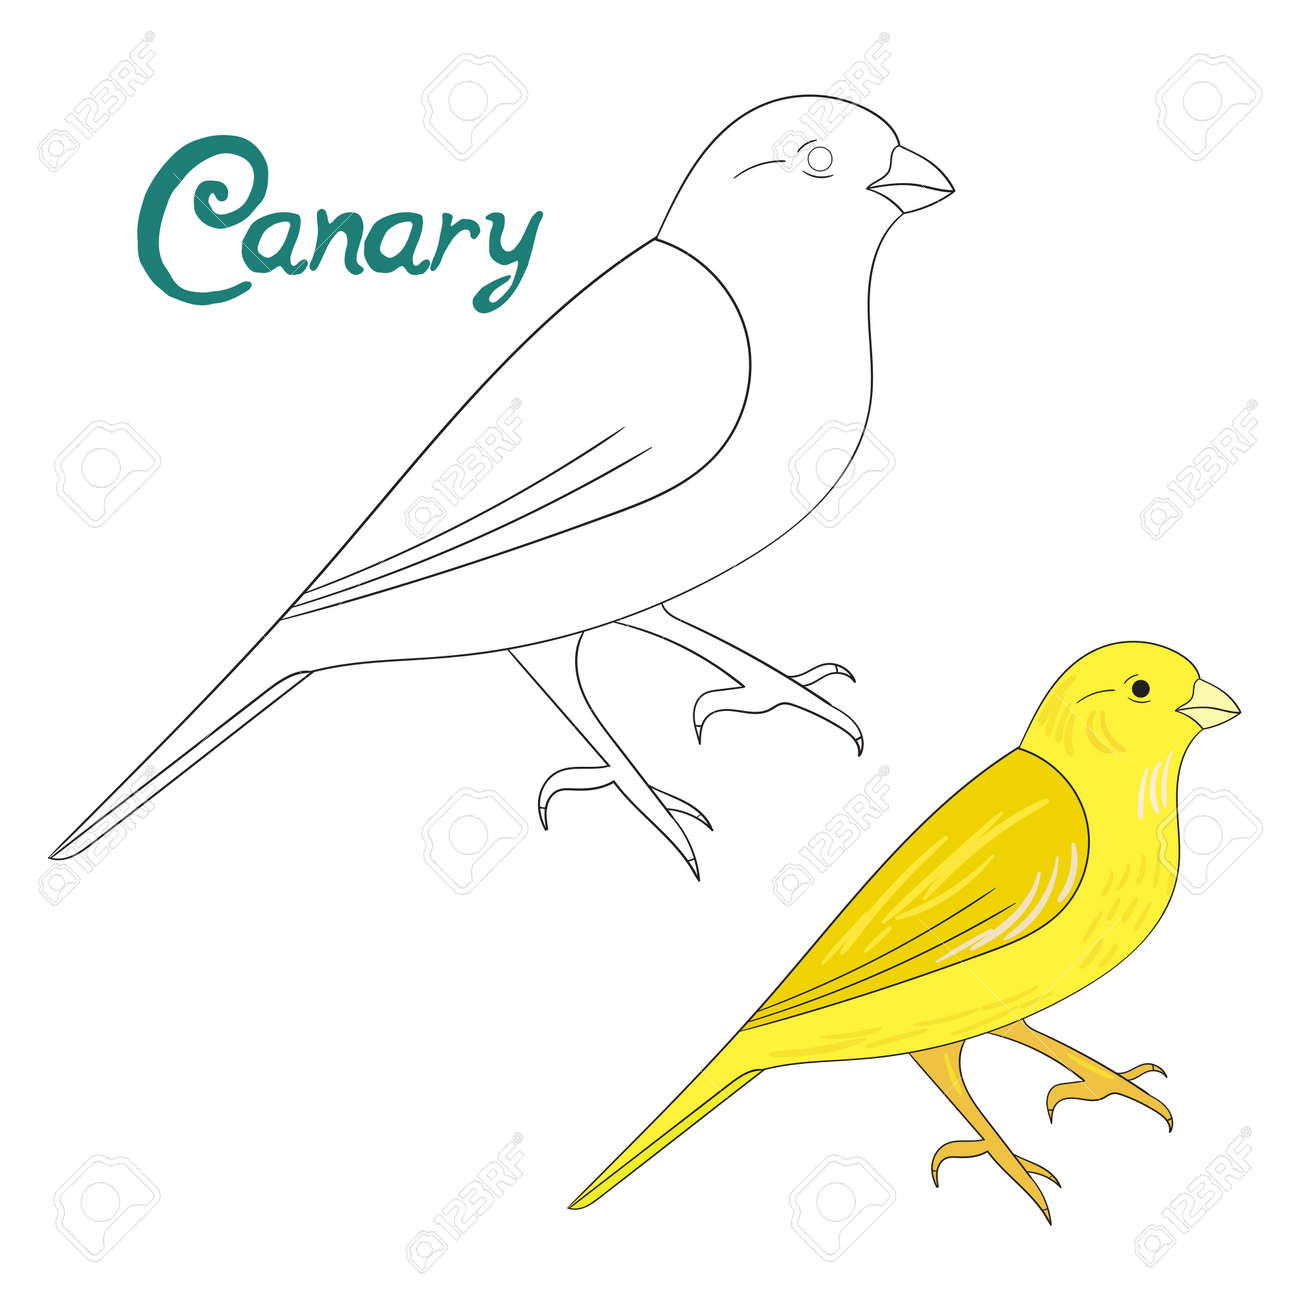 Educational Game Coloring Book Canary Bird Cartoon Doodle Hand Drawn Vector Illustration Stock